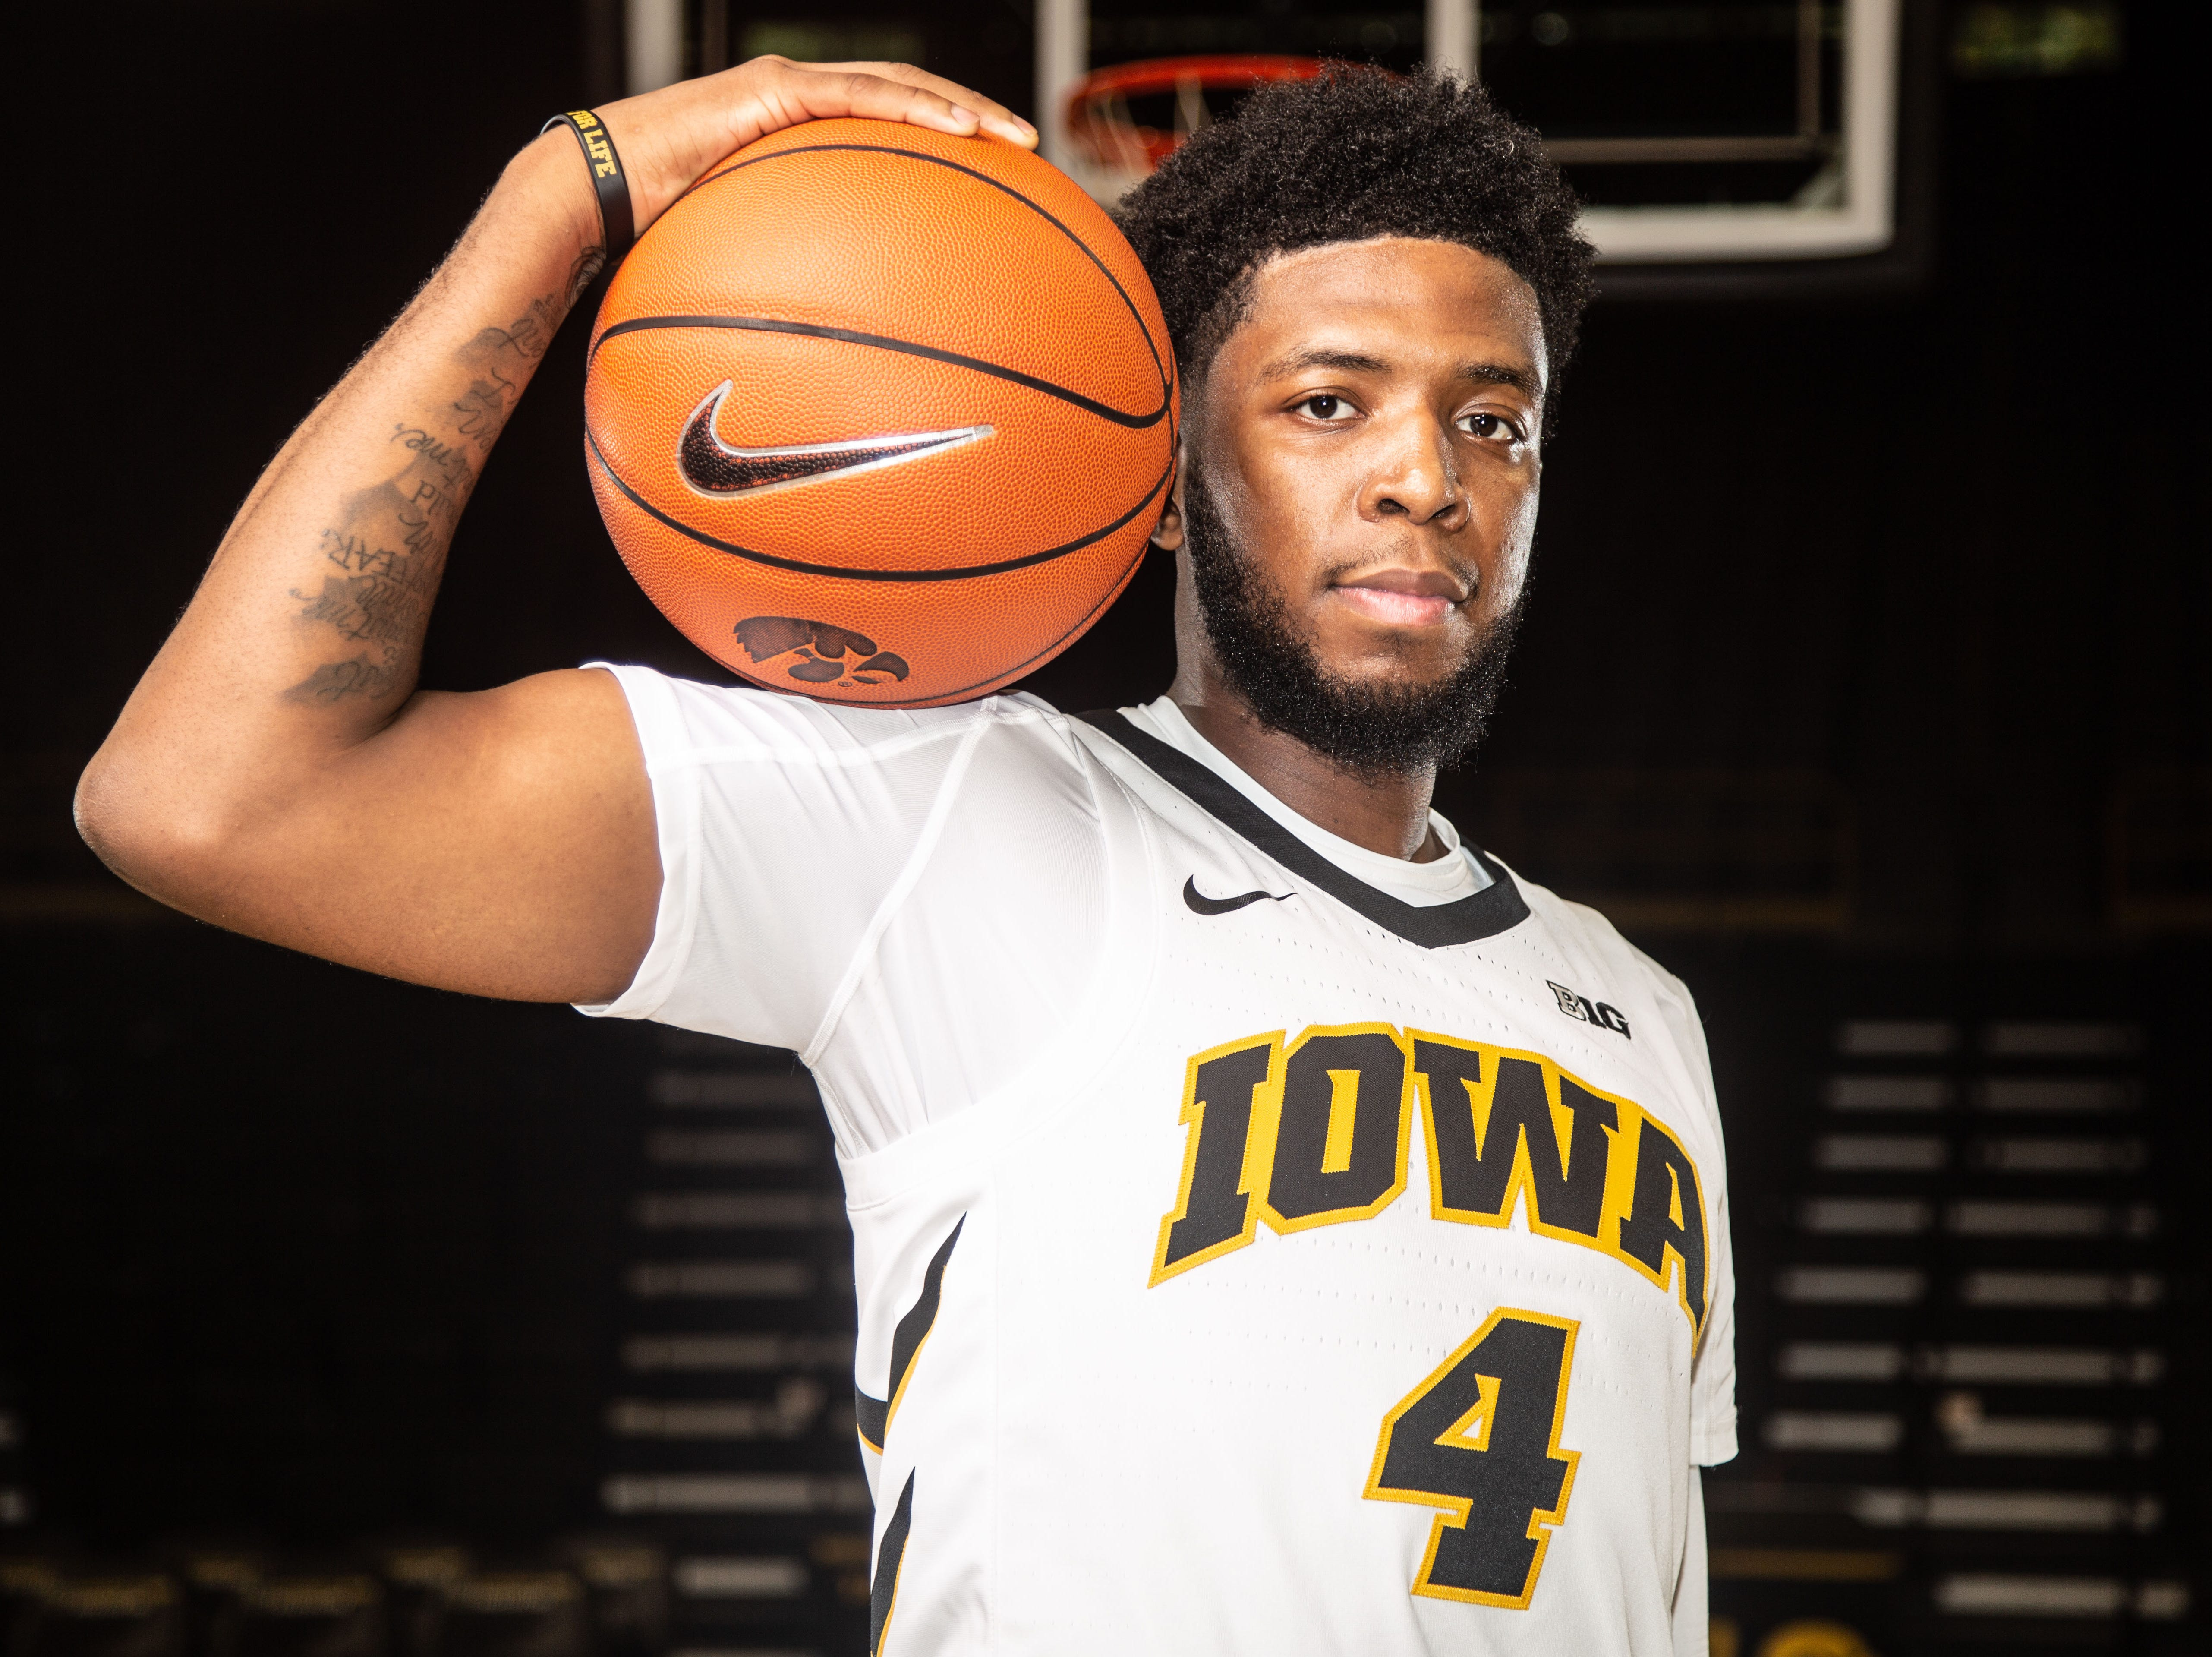 Iowa guard Isaiah Moss poses for a photo during Hawkeye media day at Carver Hawkeye ArenaMonday, Oct. 8, 2018.